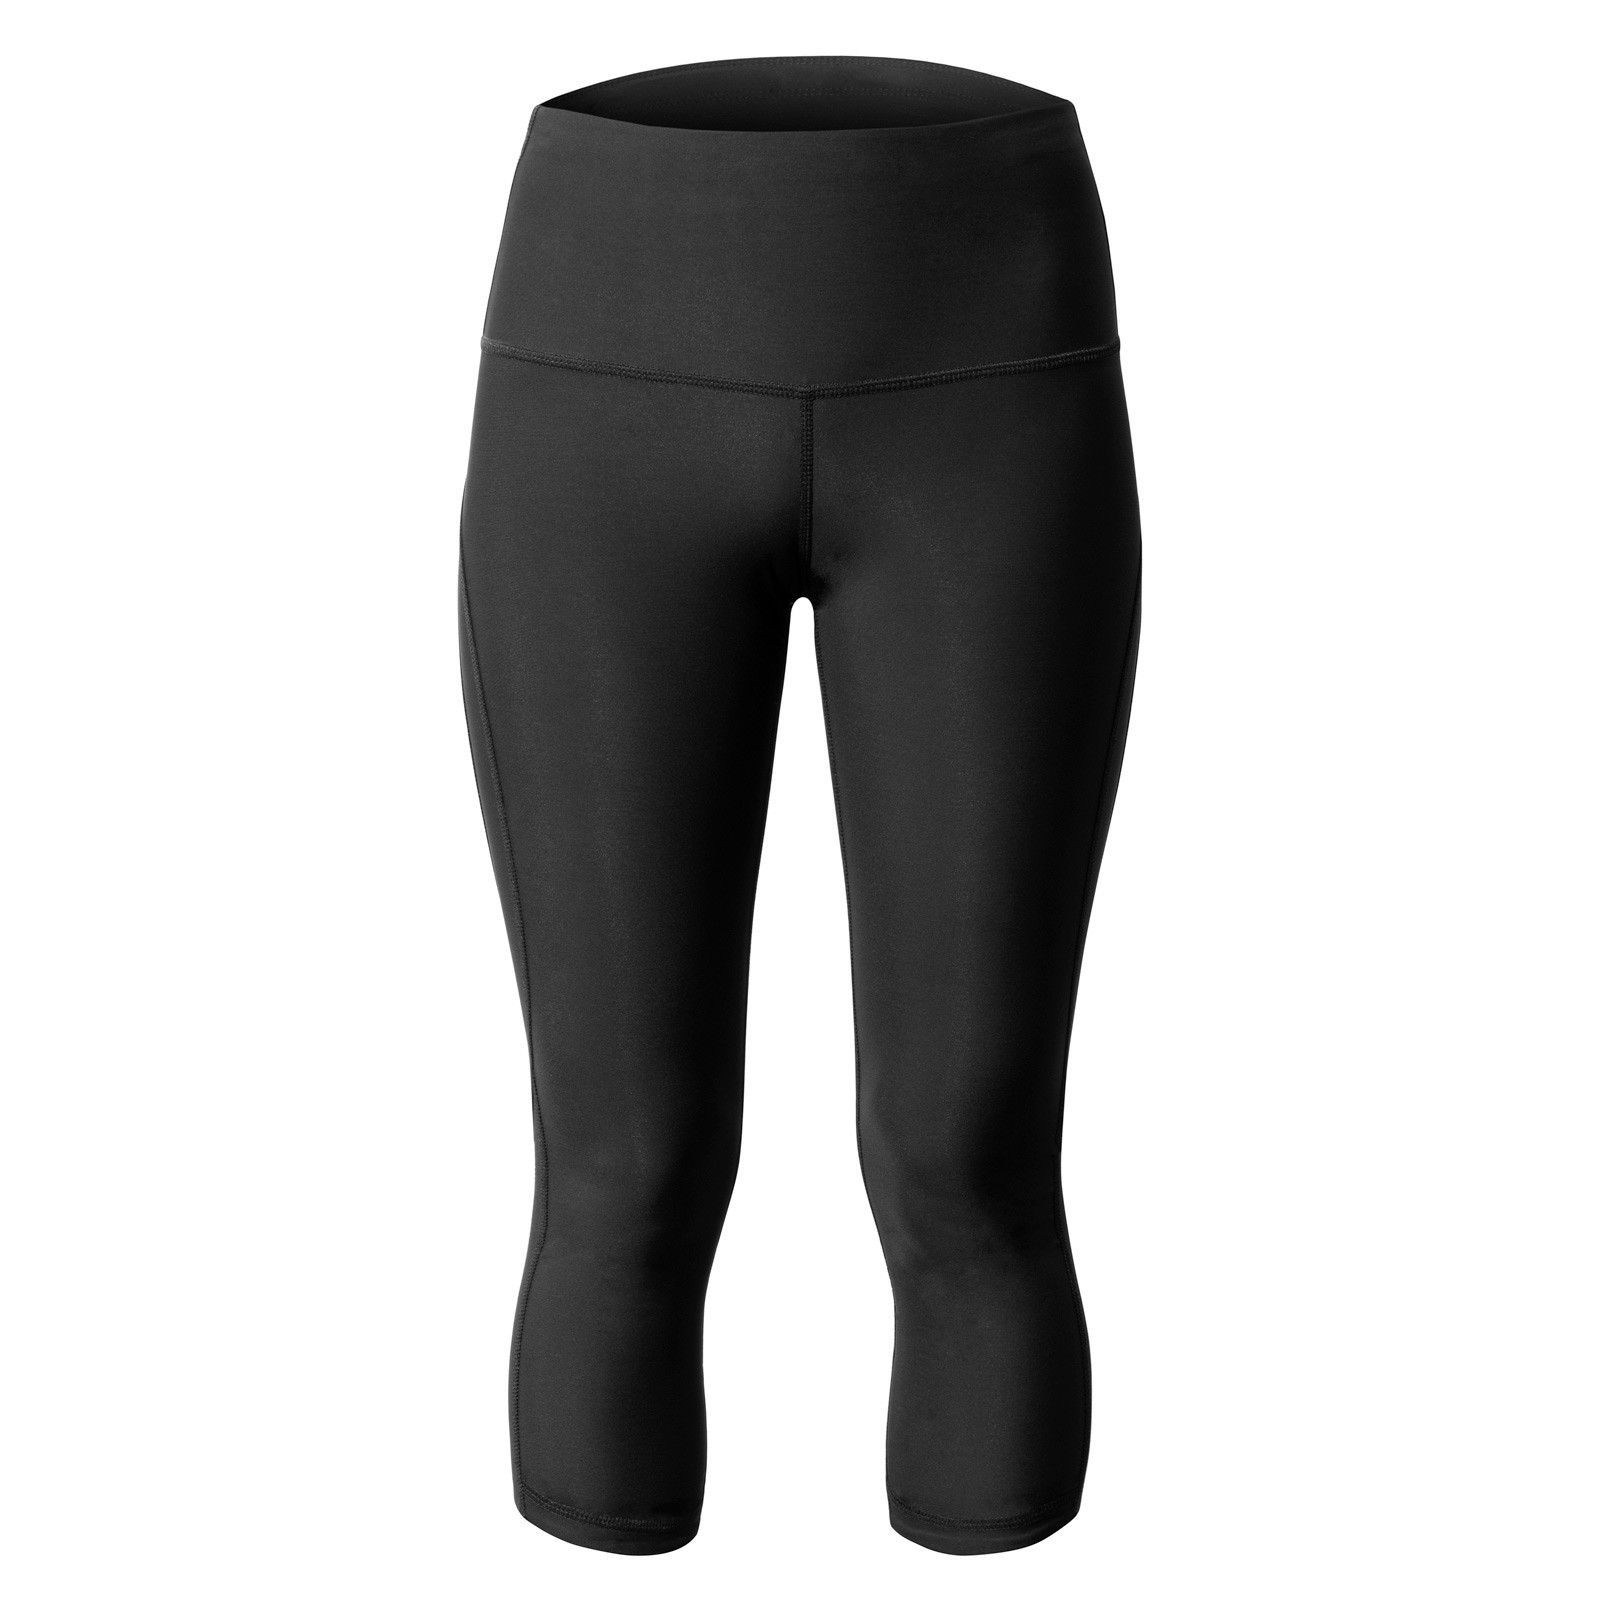 c81e59e70 Women's Elite Run High Rise Crop Tight | Products | Running, Tights ...